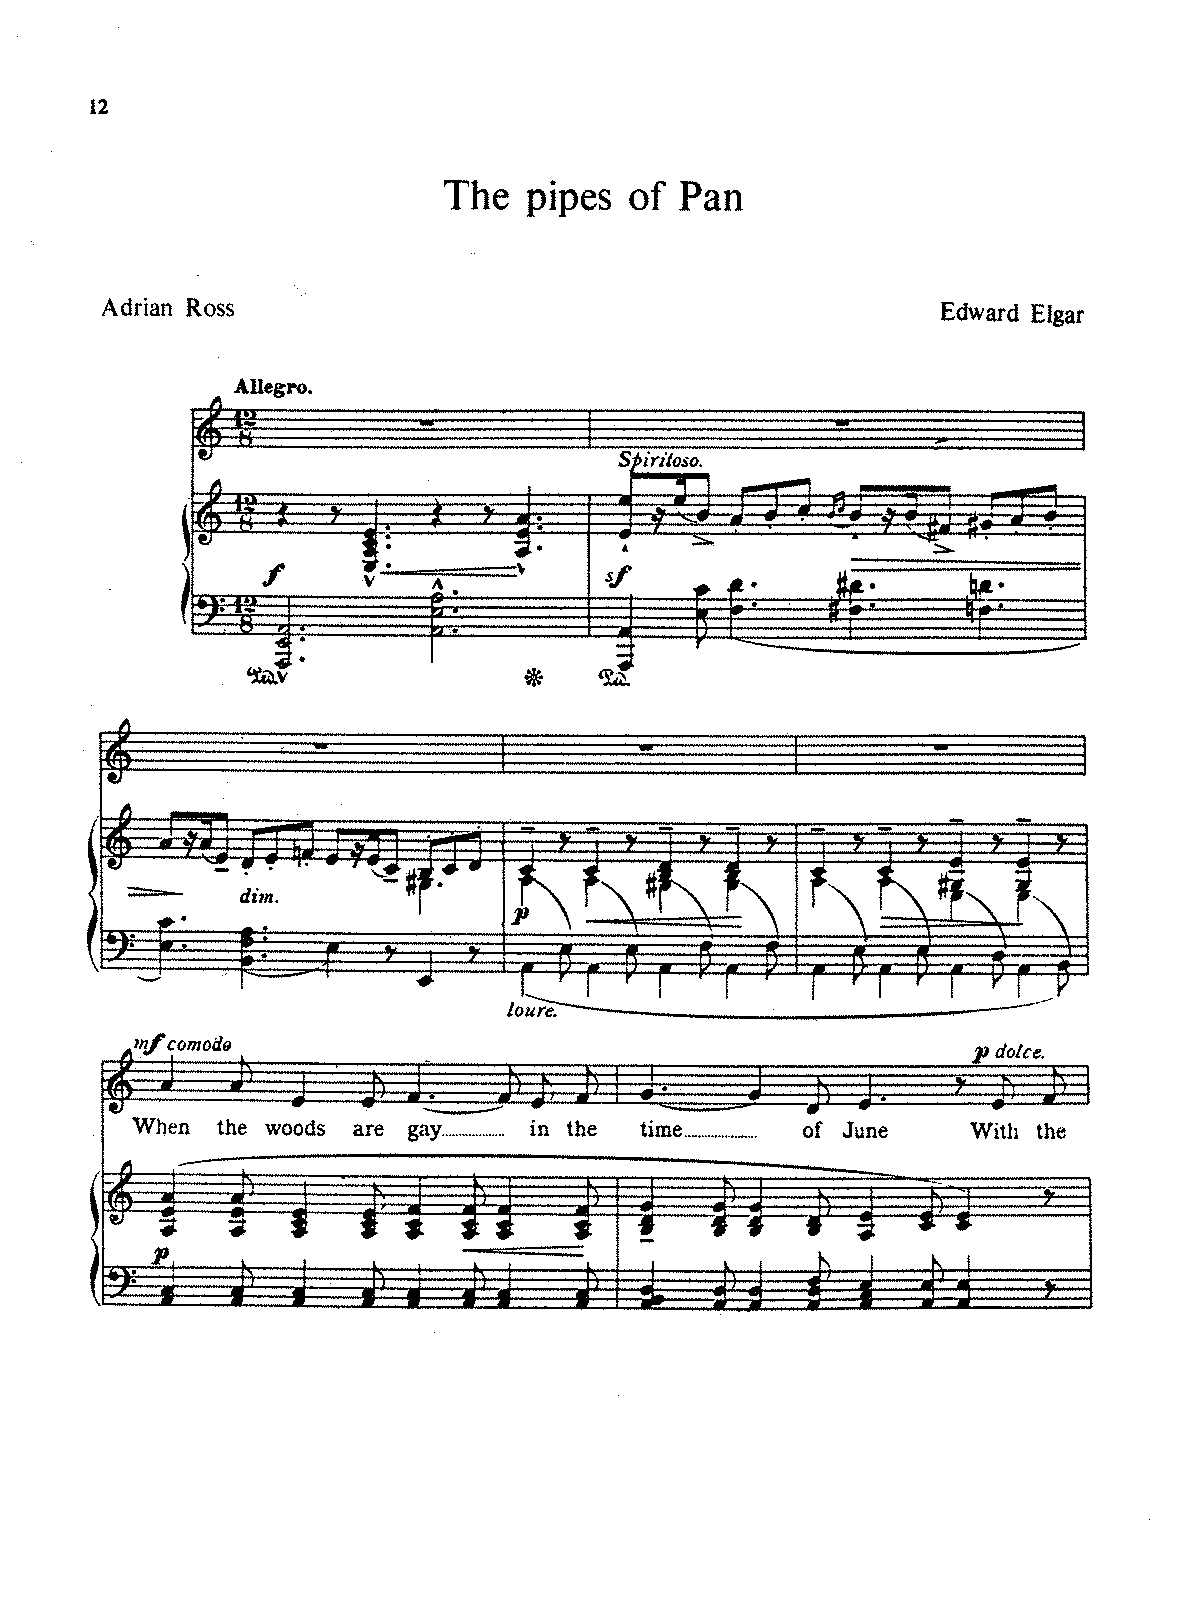 PMLP118007-Elgar - The pipes of Pan (voice and piano).pdf